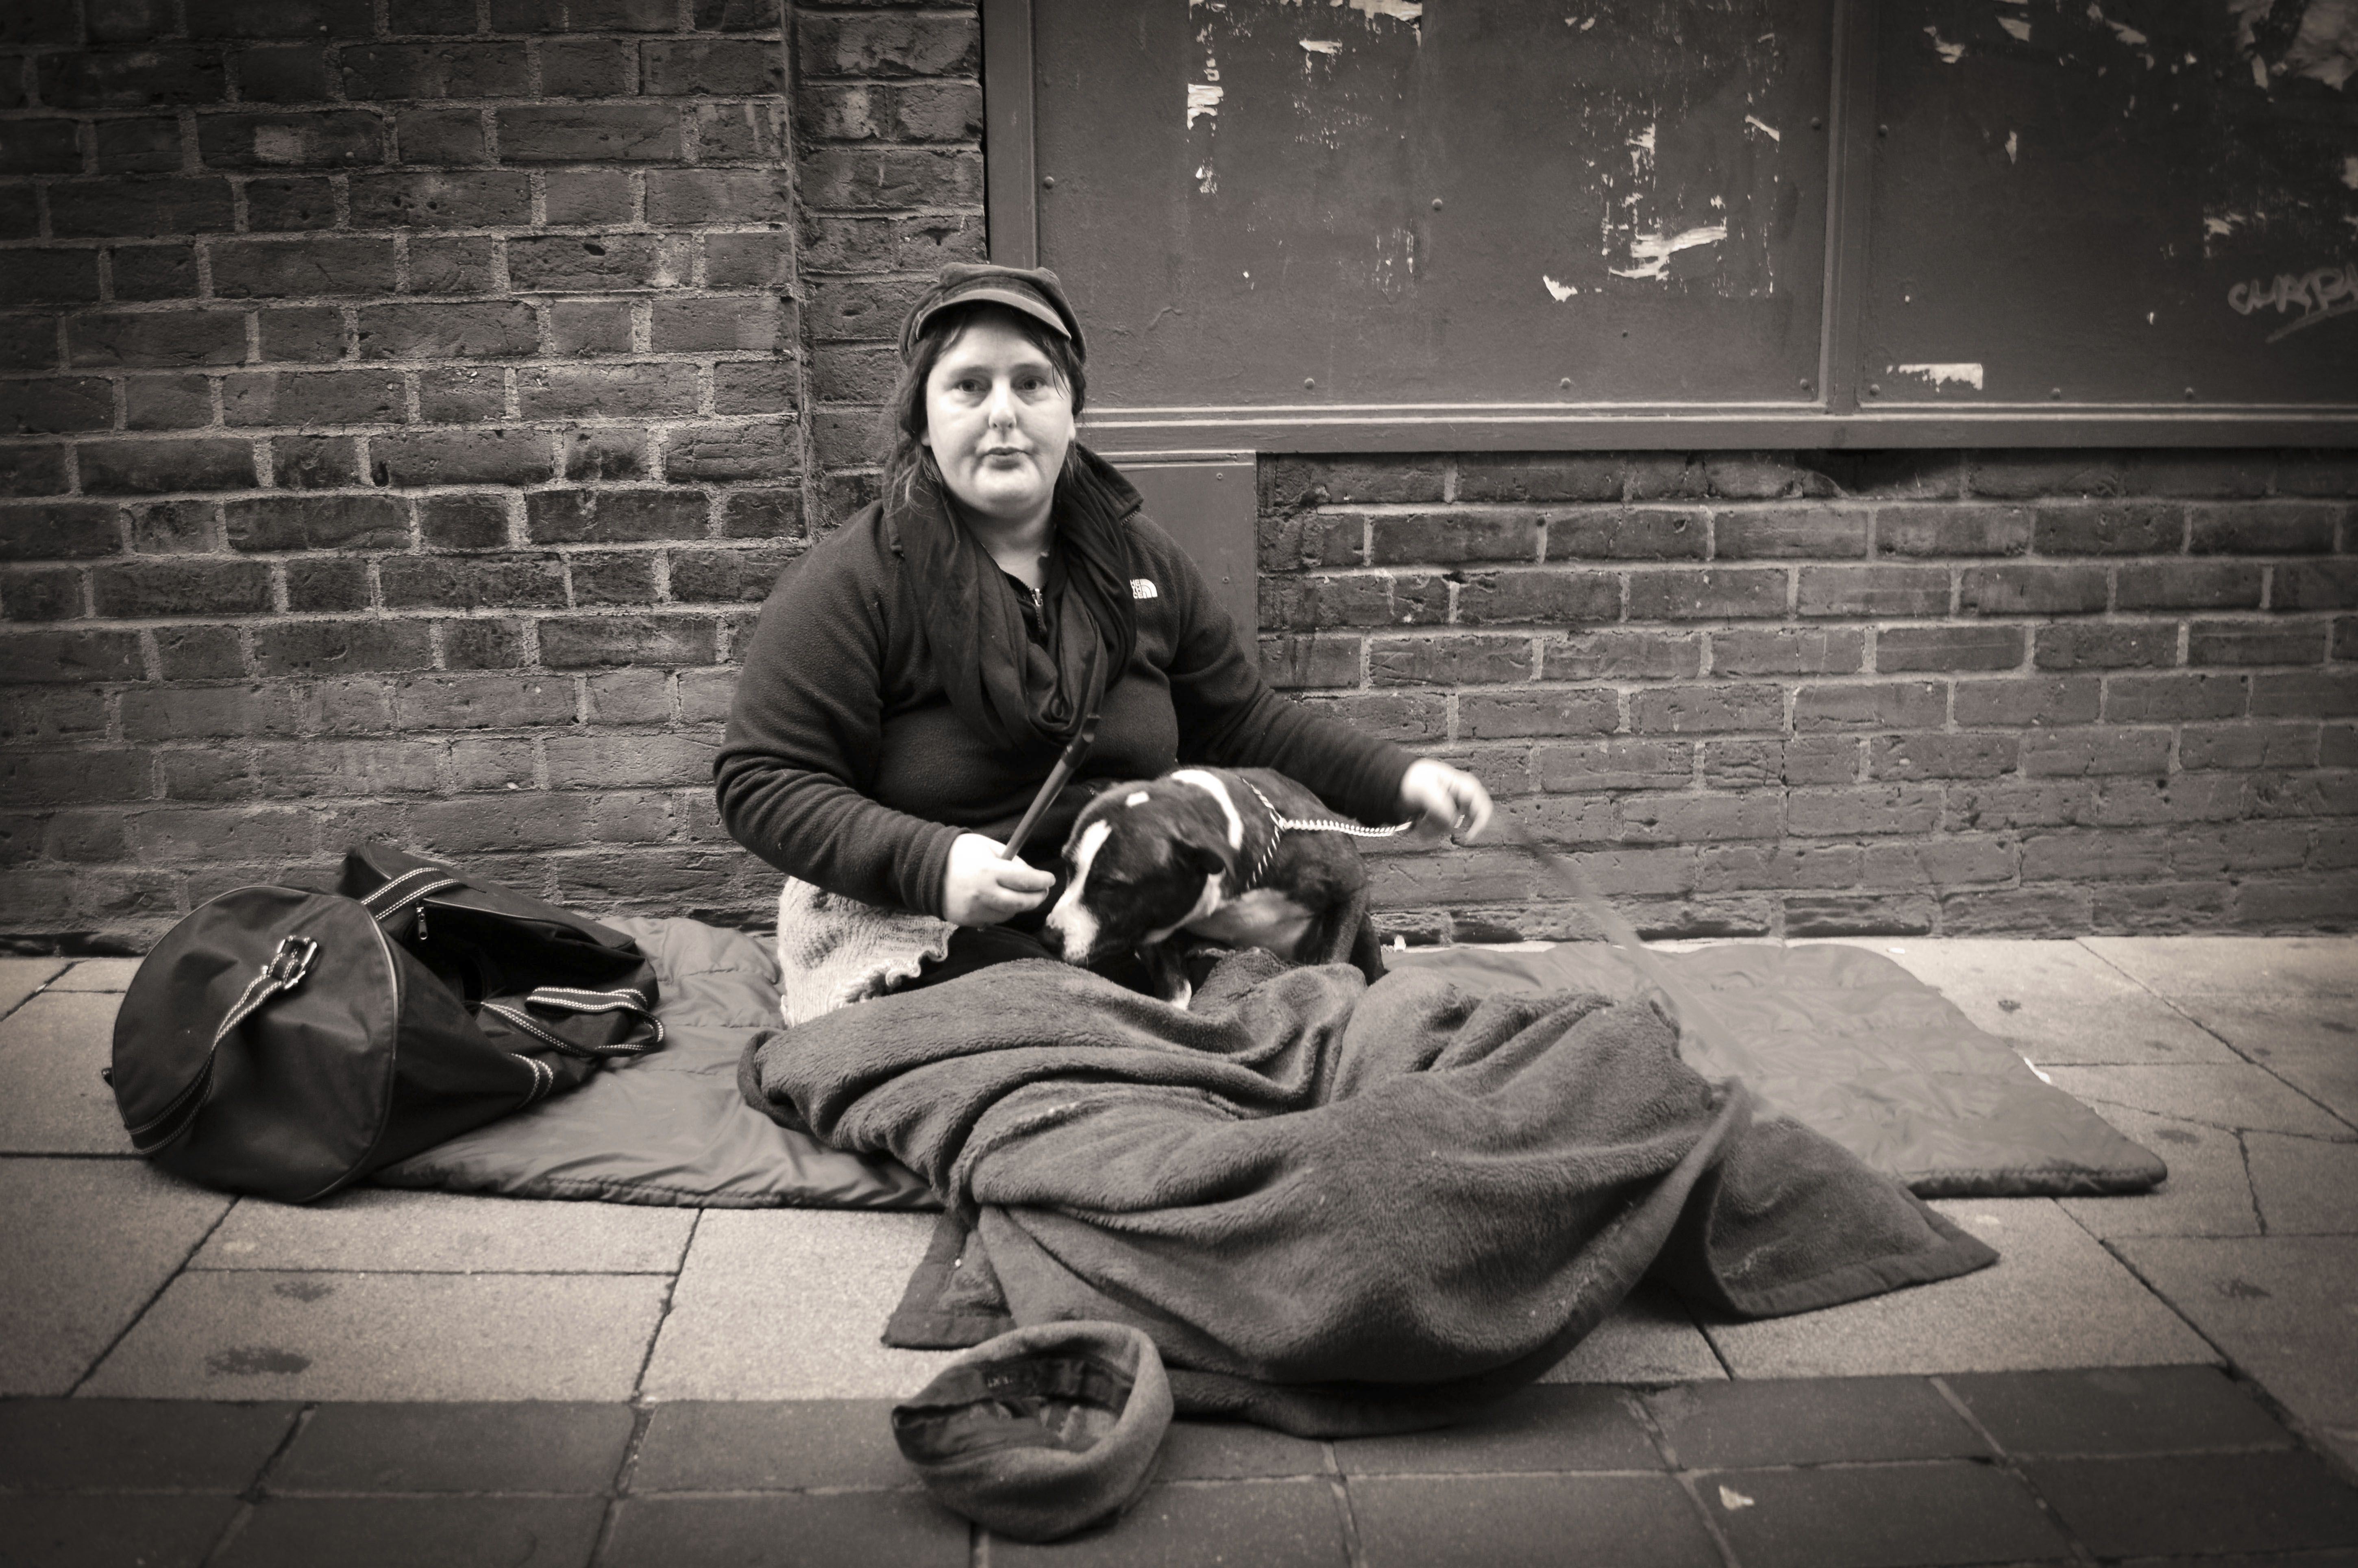 Homeless Woman - Streets of Norwich